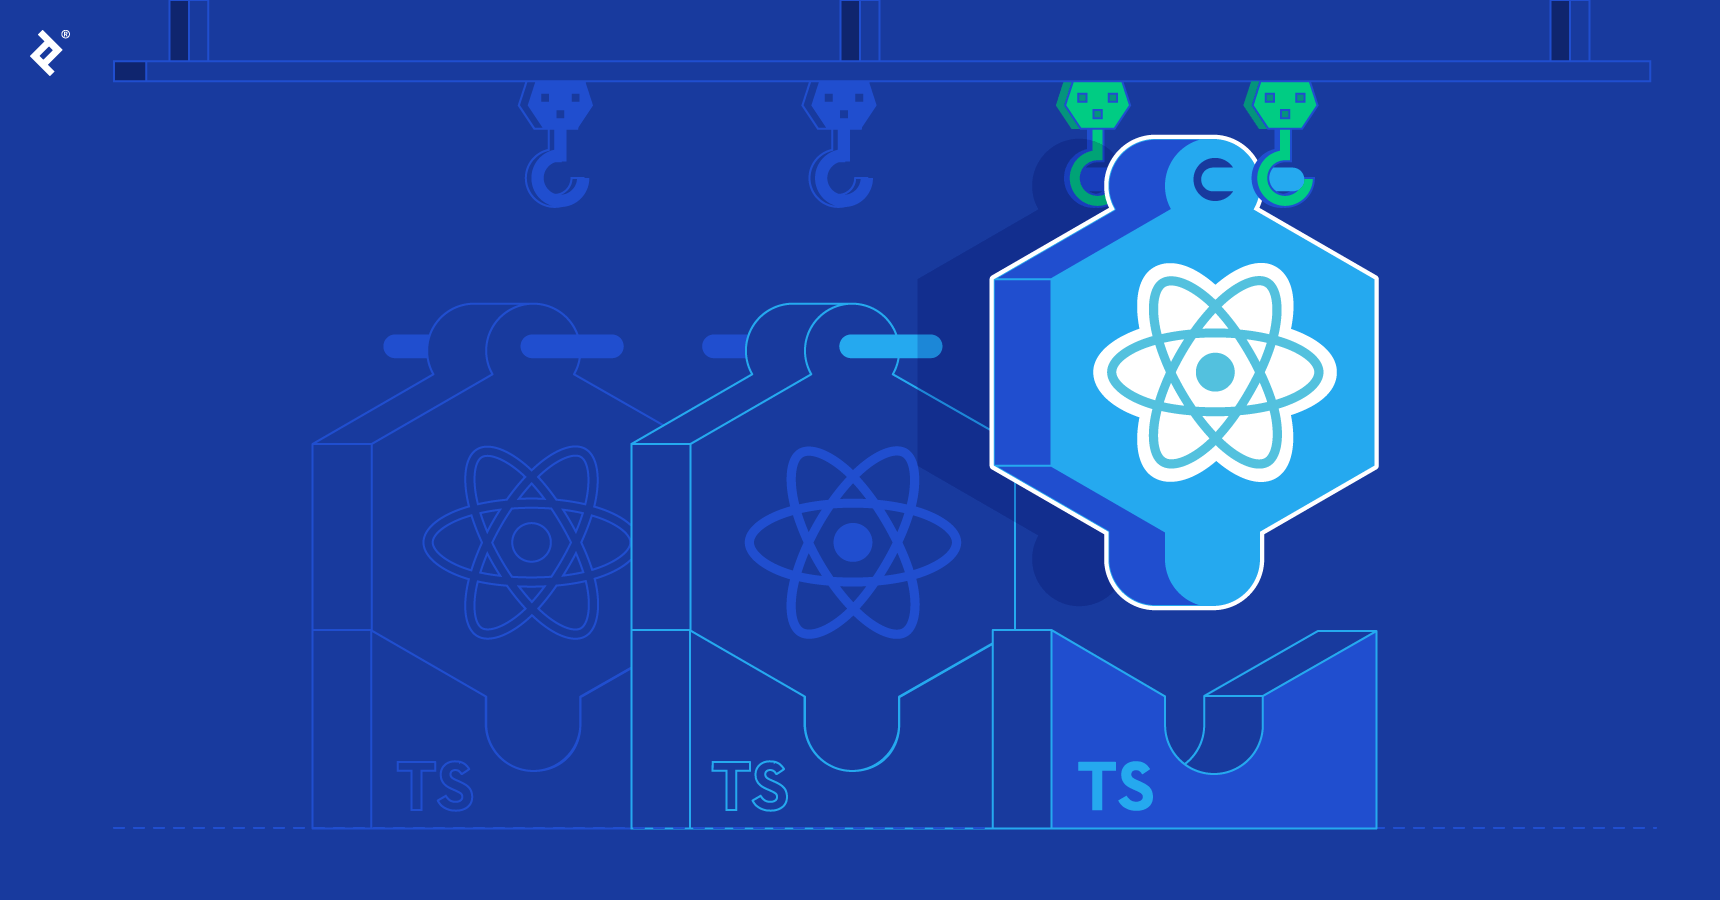 Working with React Hooks and TypeScript.